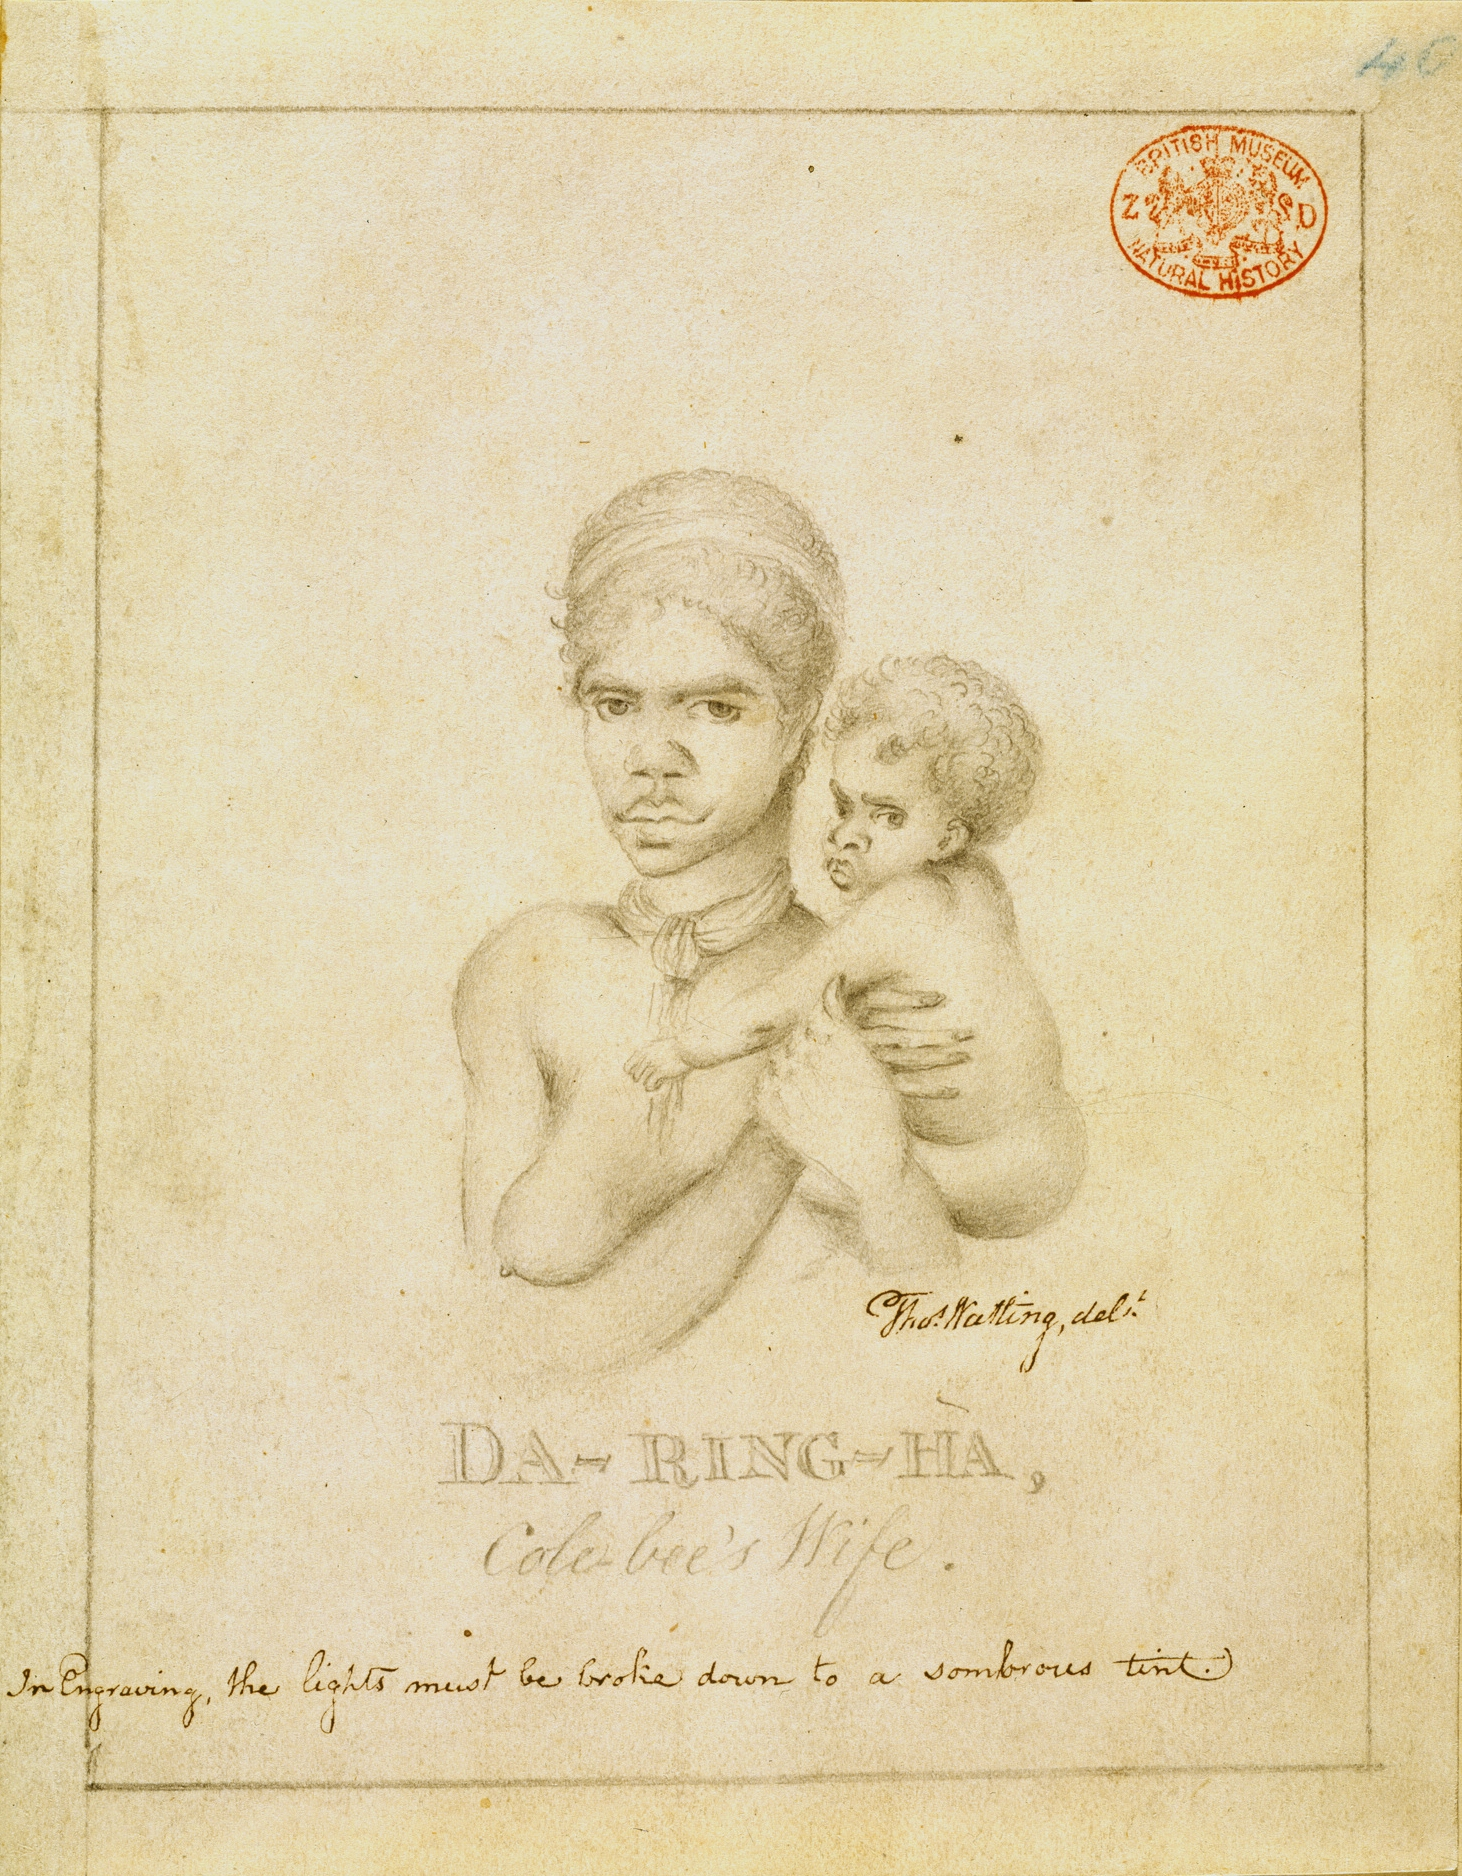 Drawing of woman holding baby with writing below the image title, which is Da-Ring-Ha, Cole-bee's wife.